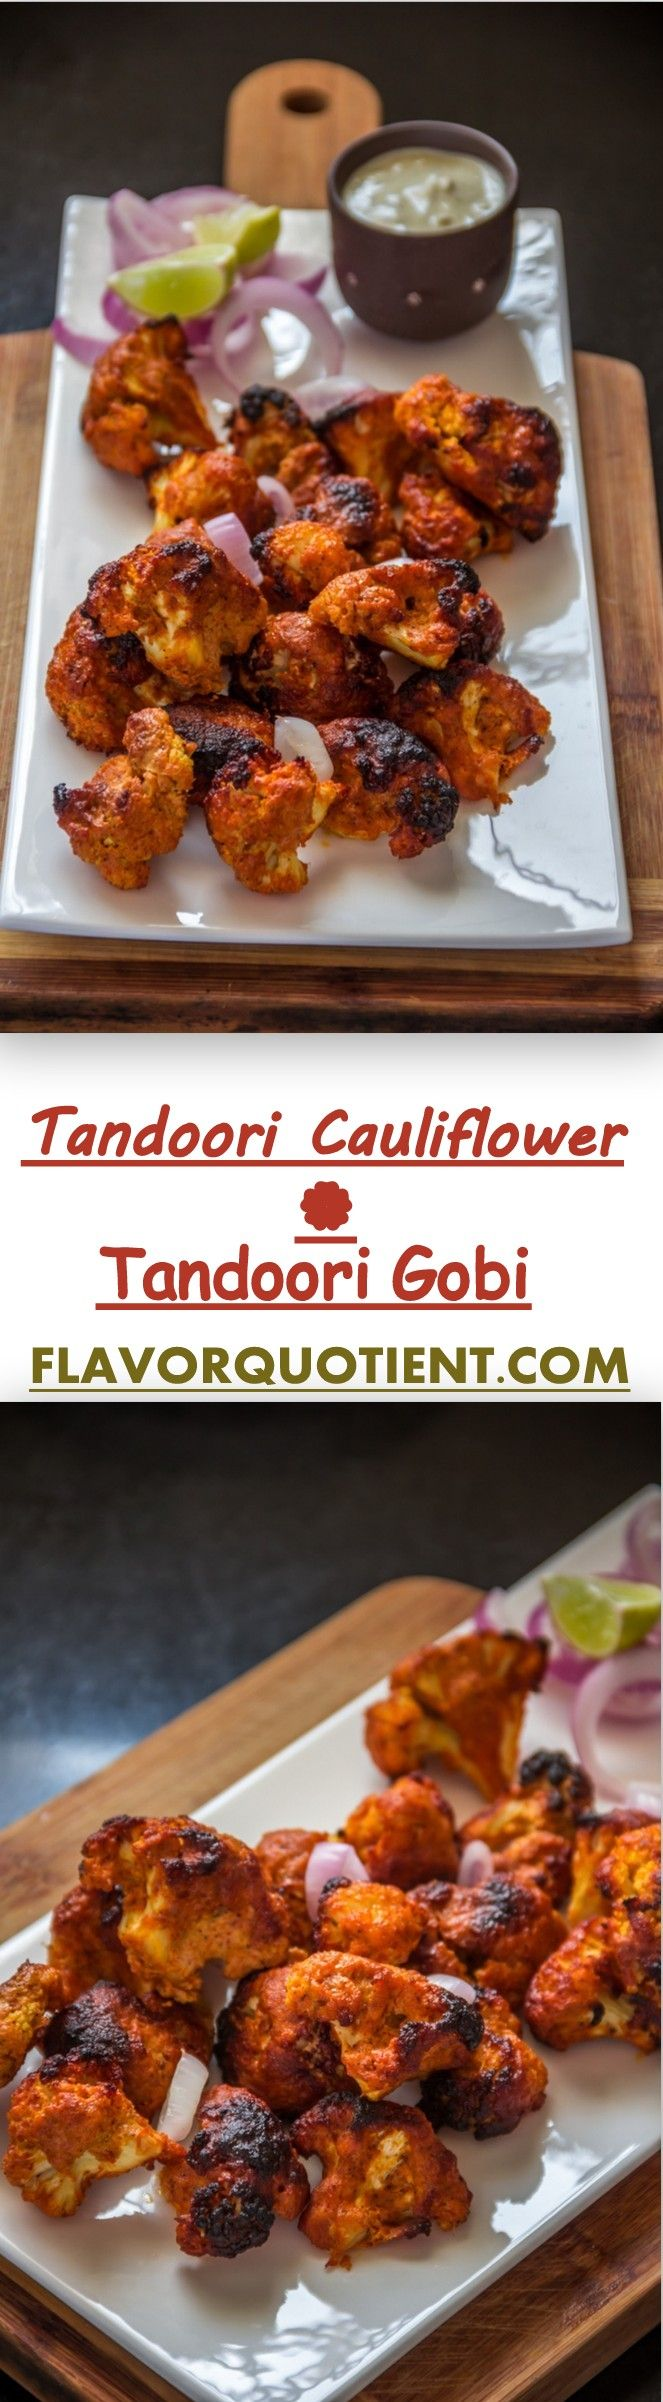 Tandoori gobi or tandoori cauliflower is my vegetarian take on the flagship recipe of Tandoori chicken and it proved to be totally mind-blowing! #TandooriCauliflower #TandooriGobi #Tandoori #CauliflowerRecipes #Appetizers #Starters #FlavorQuotient